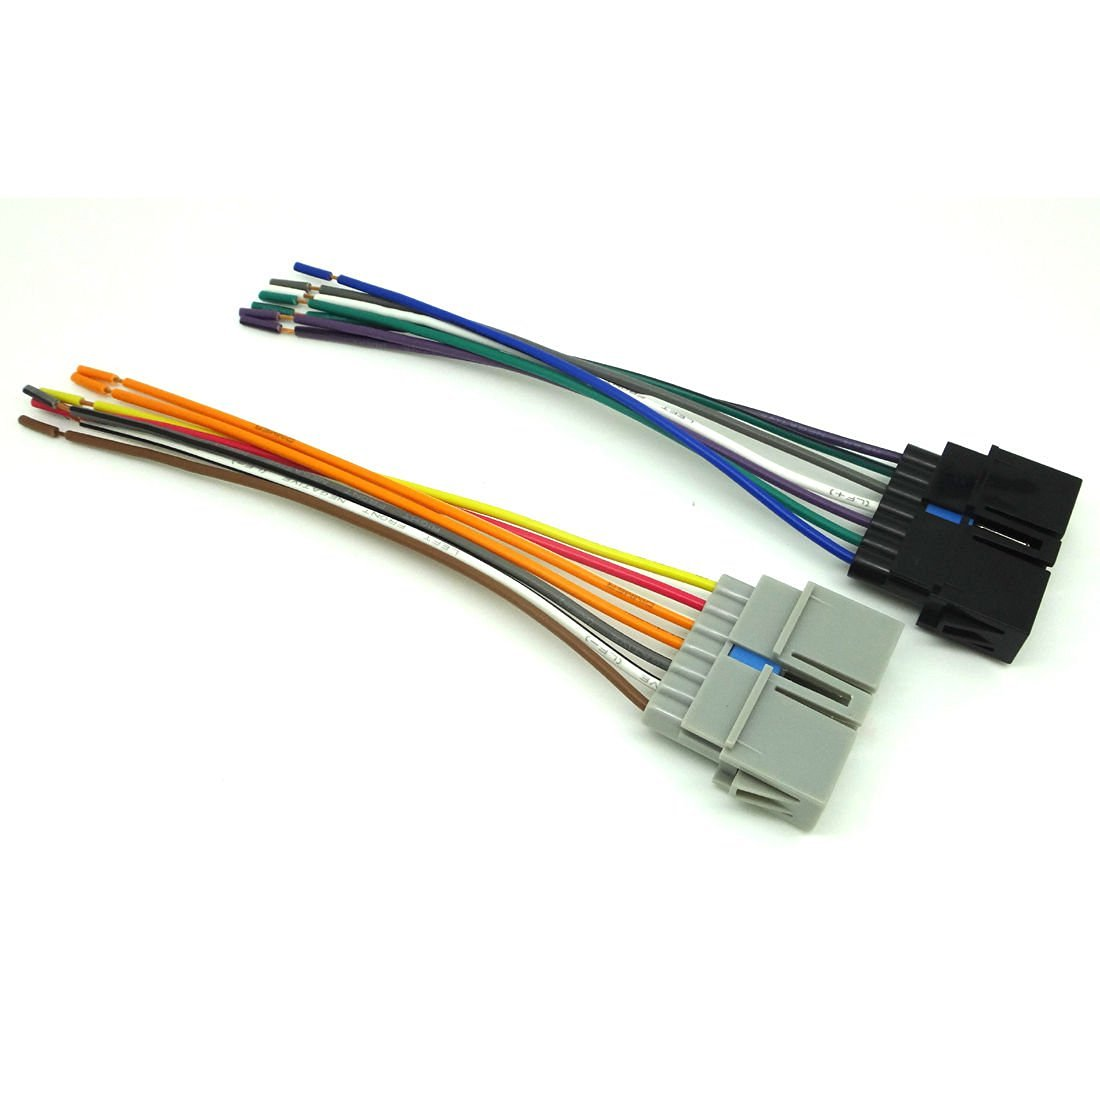 hight resolution of chrysler dodge jeep car stereo cd player wire harness aftermarket radio install 1997 2002 jeep eagle wrangler sk1817 11